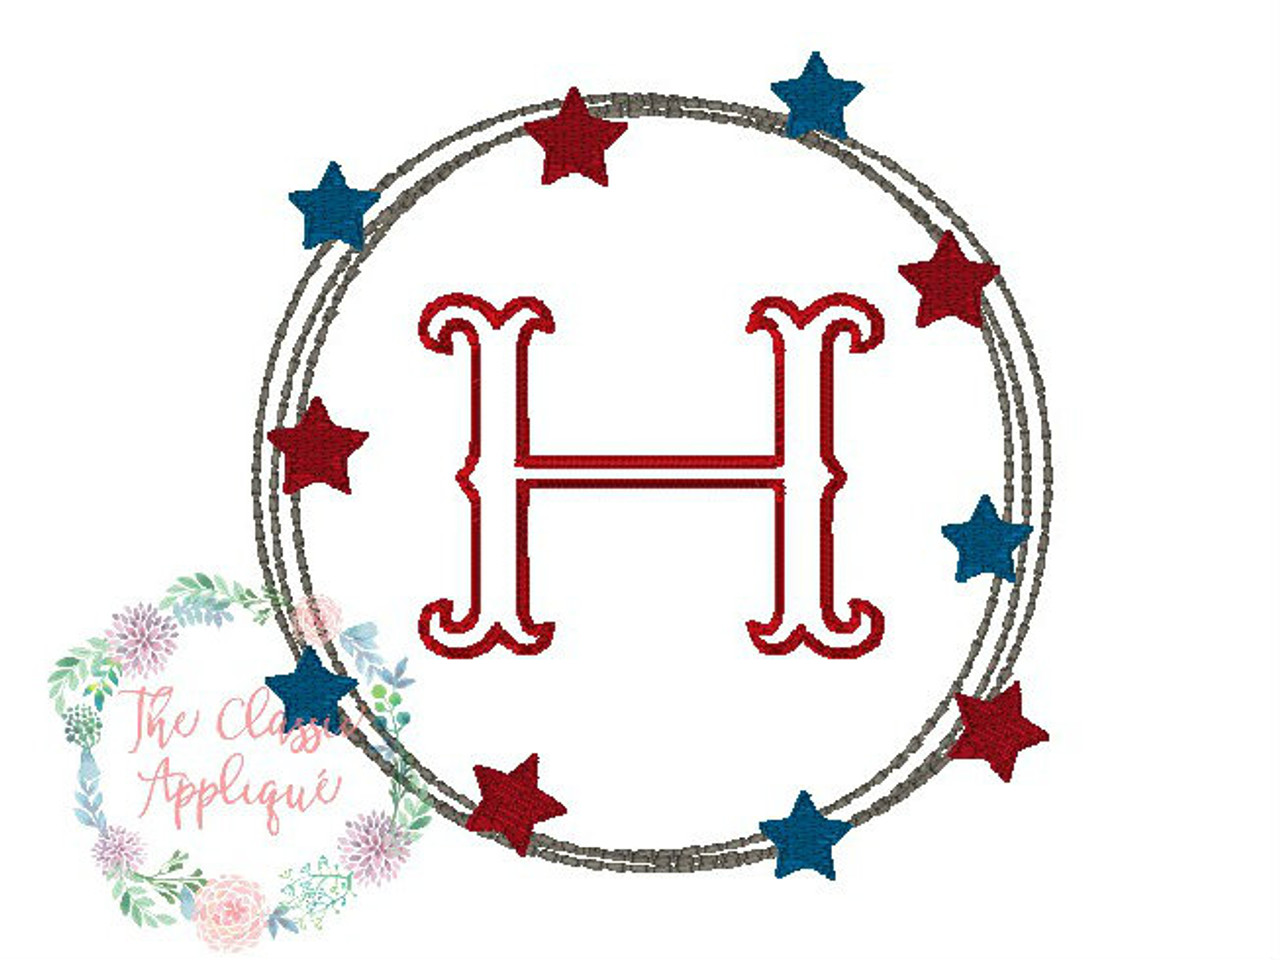 Patriotic For The Fourth Of July Vintage Stitch Circle And Mini Fill Stitch Star Monogram Frame By The Classic Applique